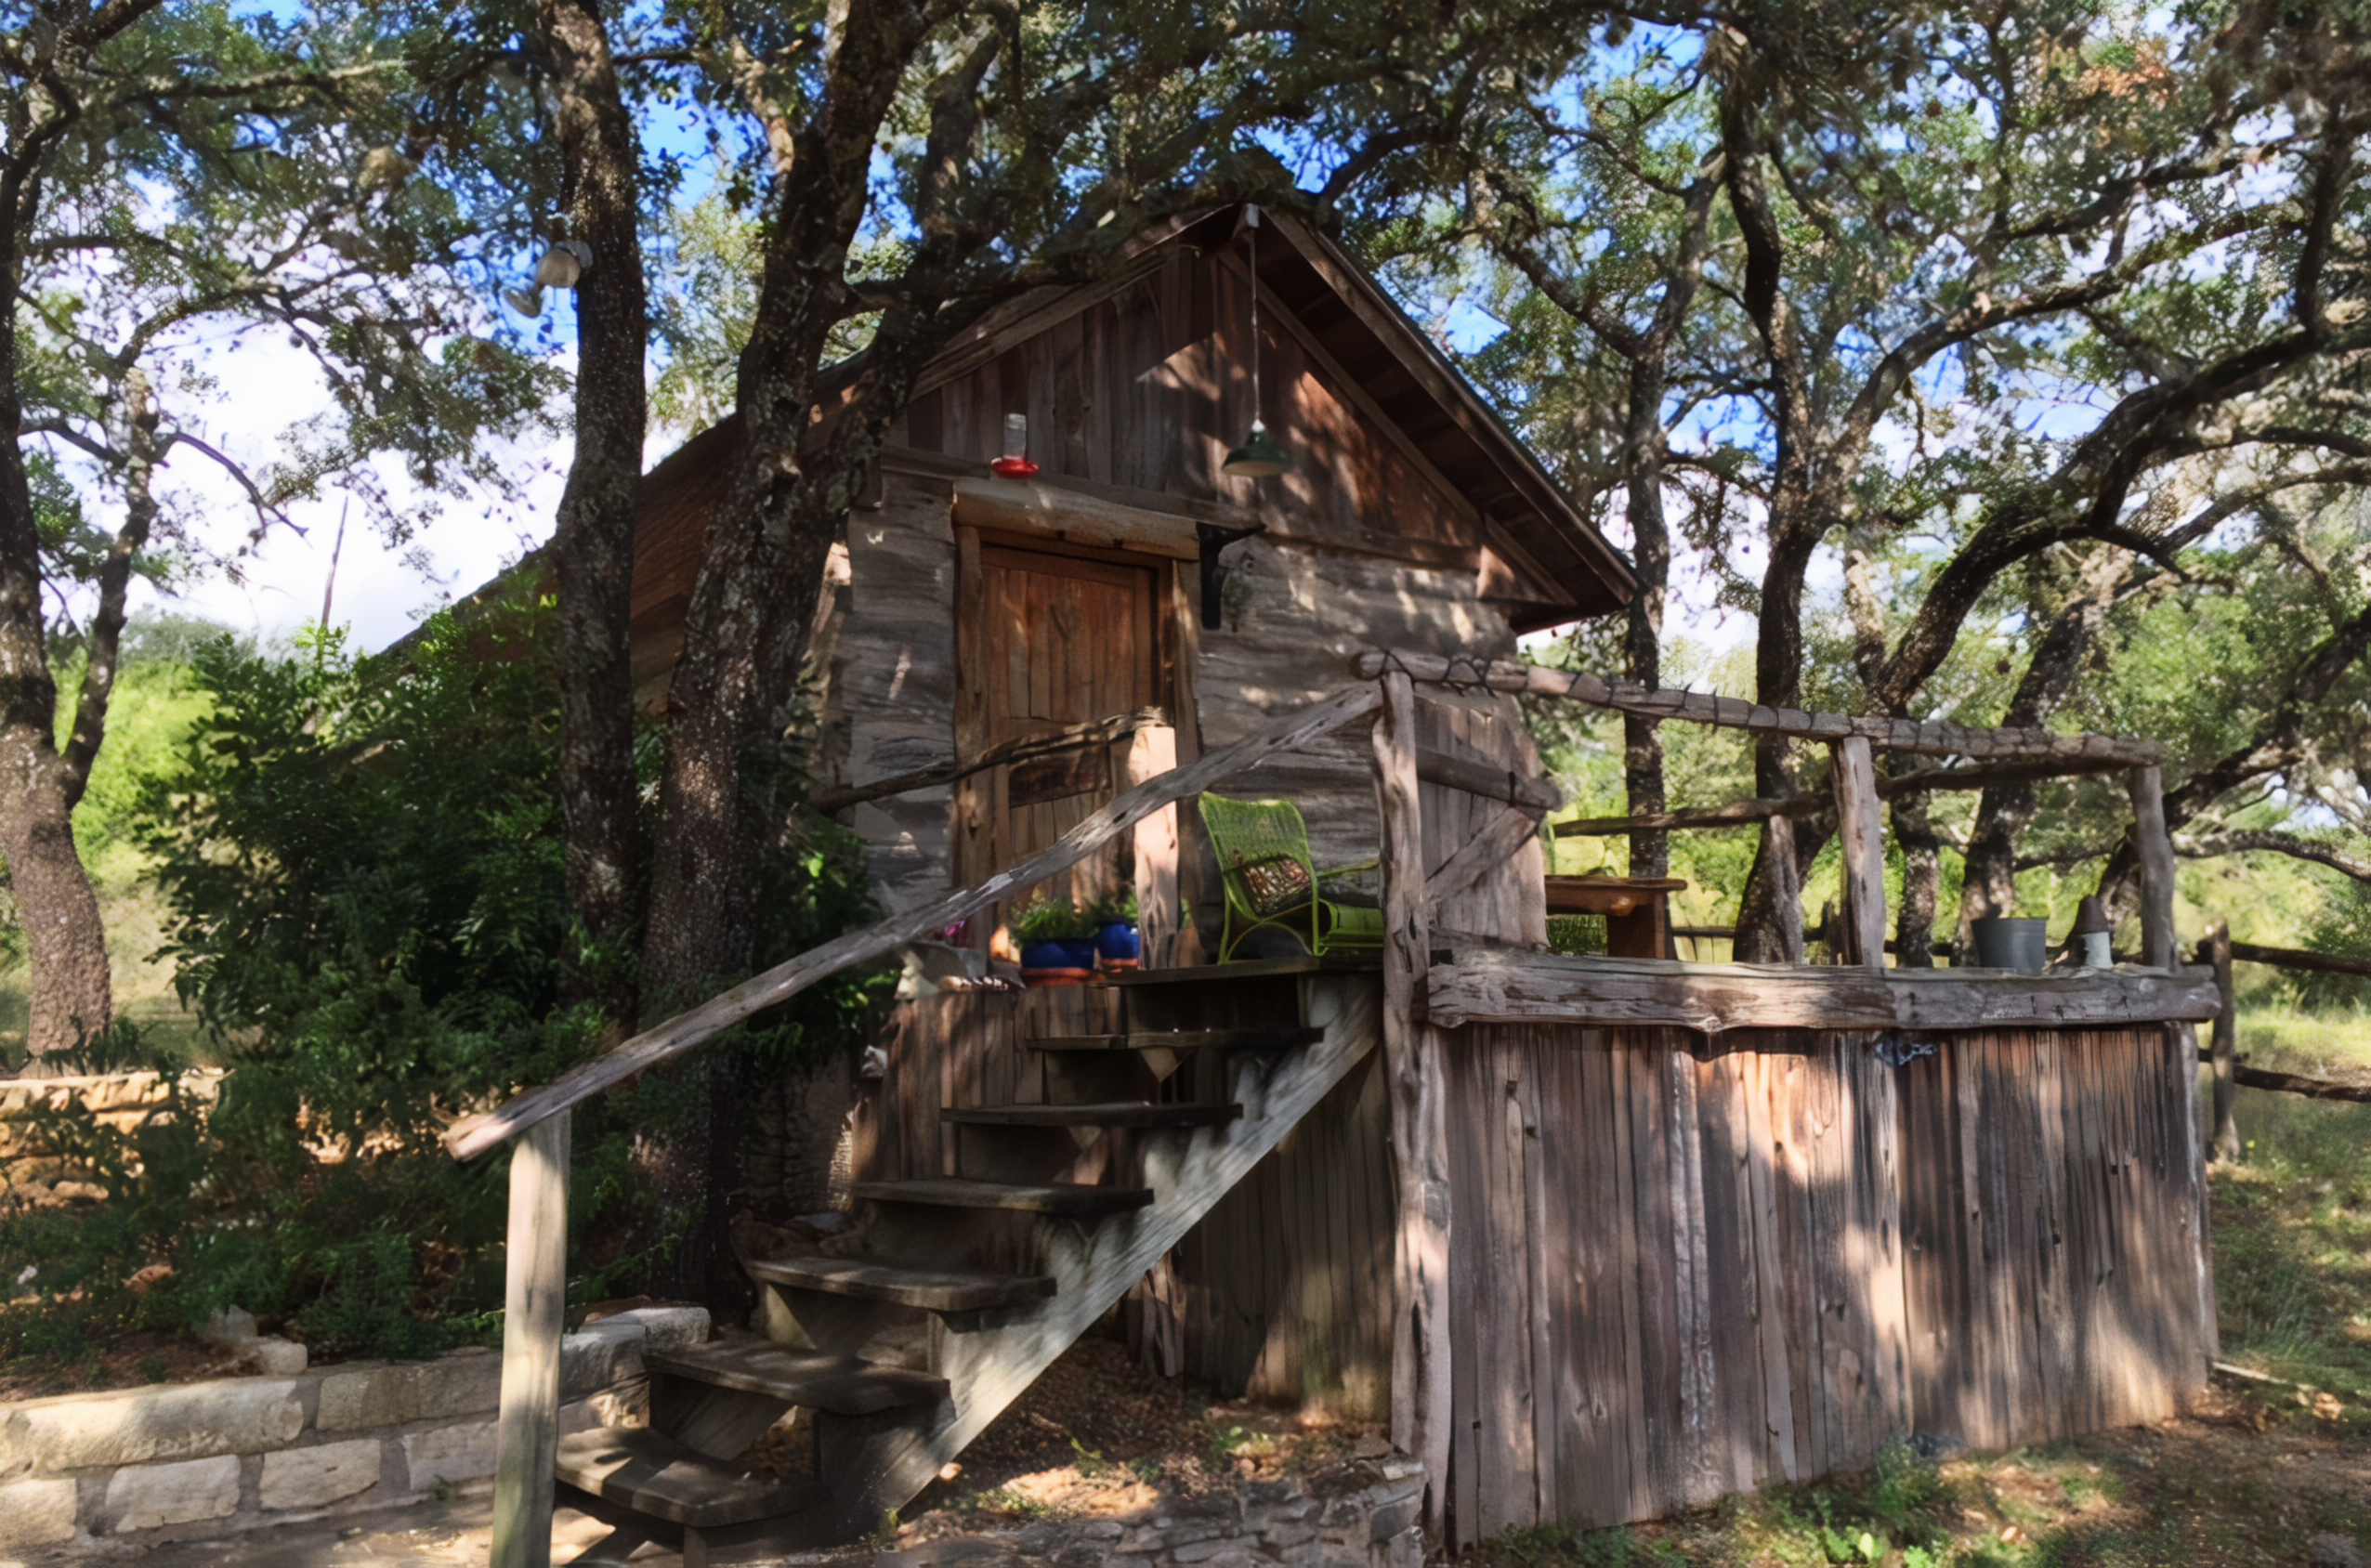 A house with a wooden fence at Chanticleer Log Cabin Bed & Breakfast.